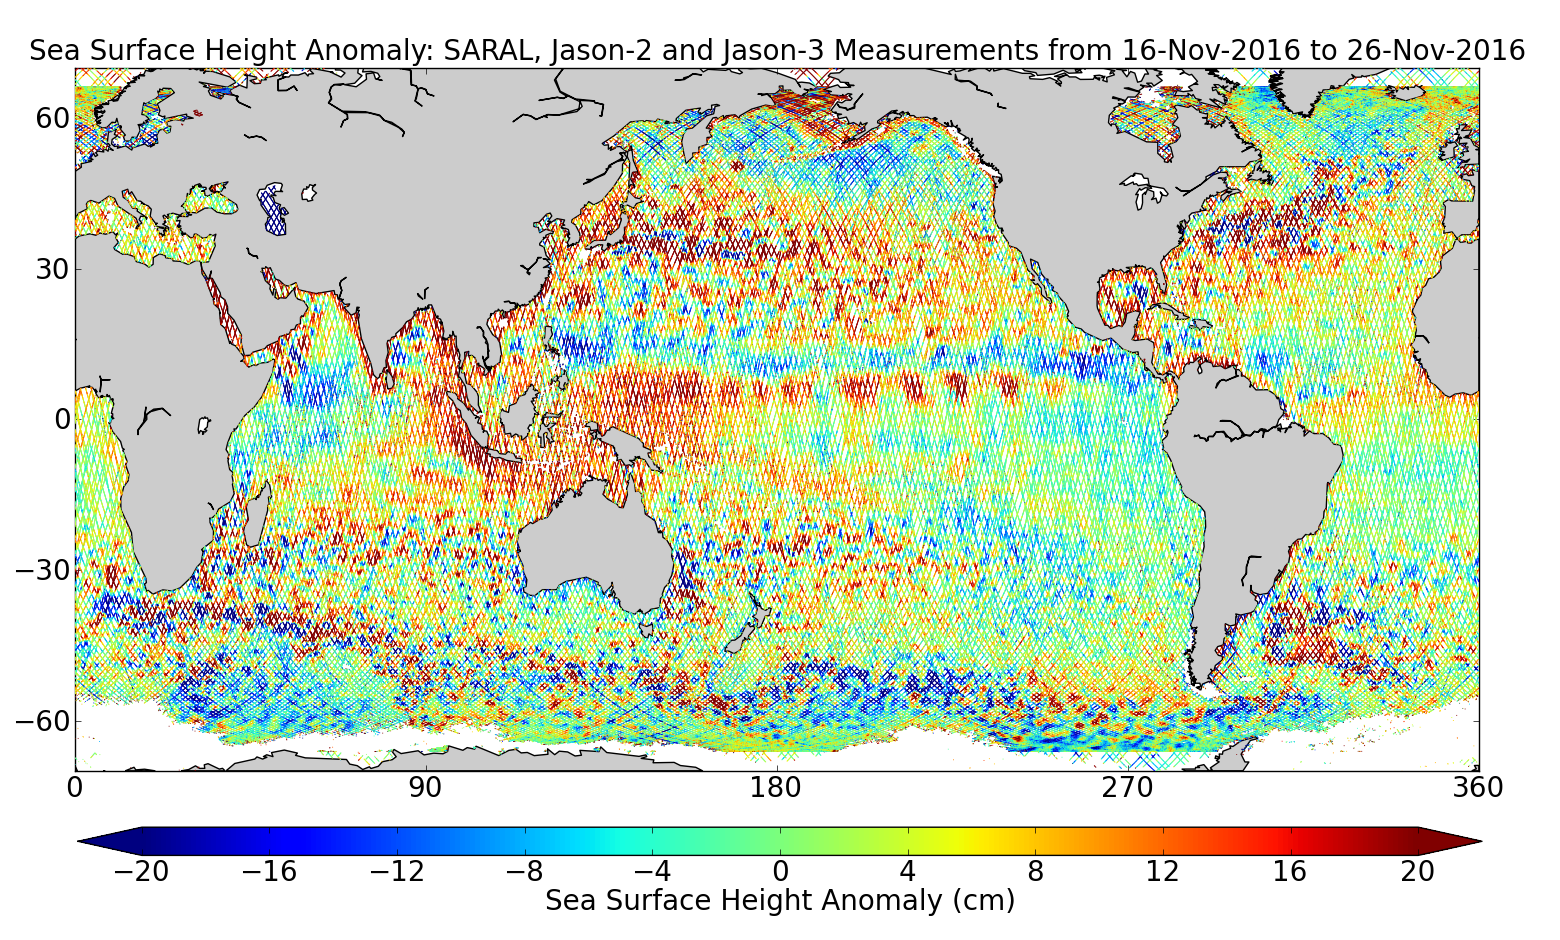 Sea Surface Height Anomaly: SARAL, Jason-2 and Jason-3 Measurements from 16-Nov-2016 to 26-Nov-2016